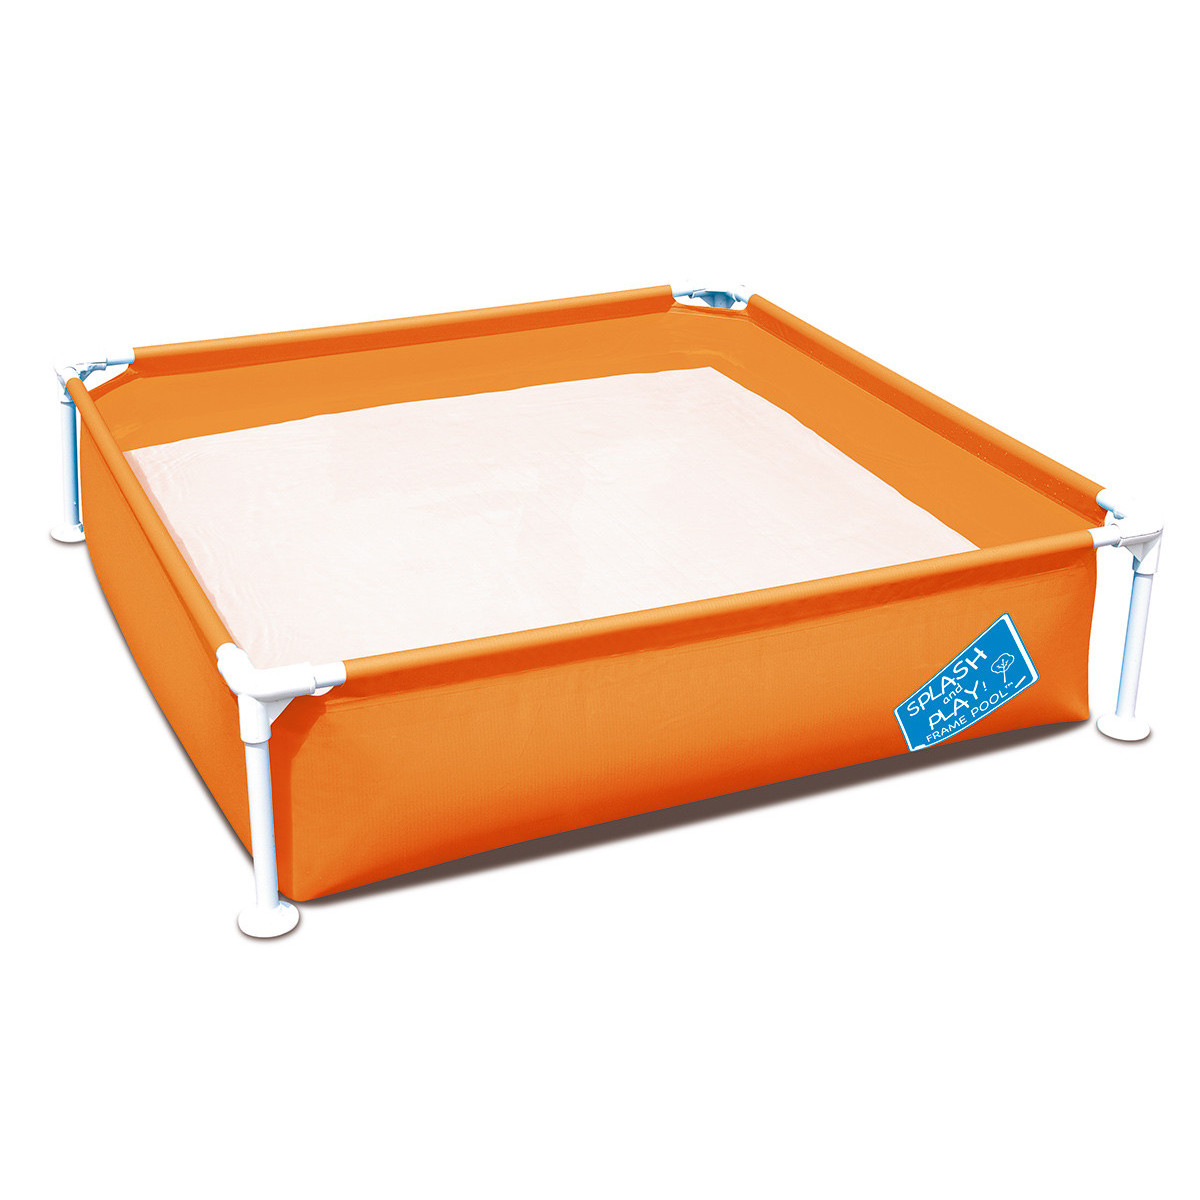 Bestway Removable Pool Tubular Infant My First Pool 122 Cm X 122 Cm X 30 Cm, 5-56217B